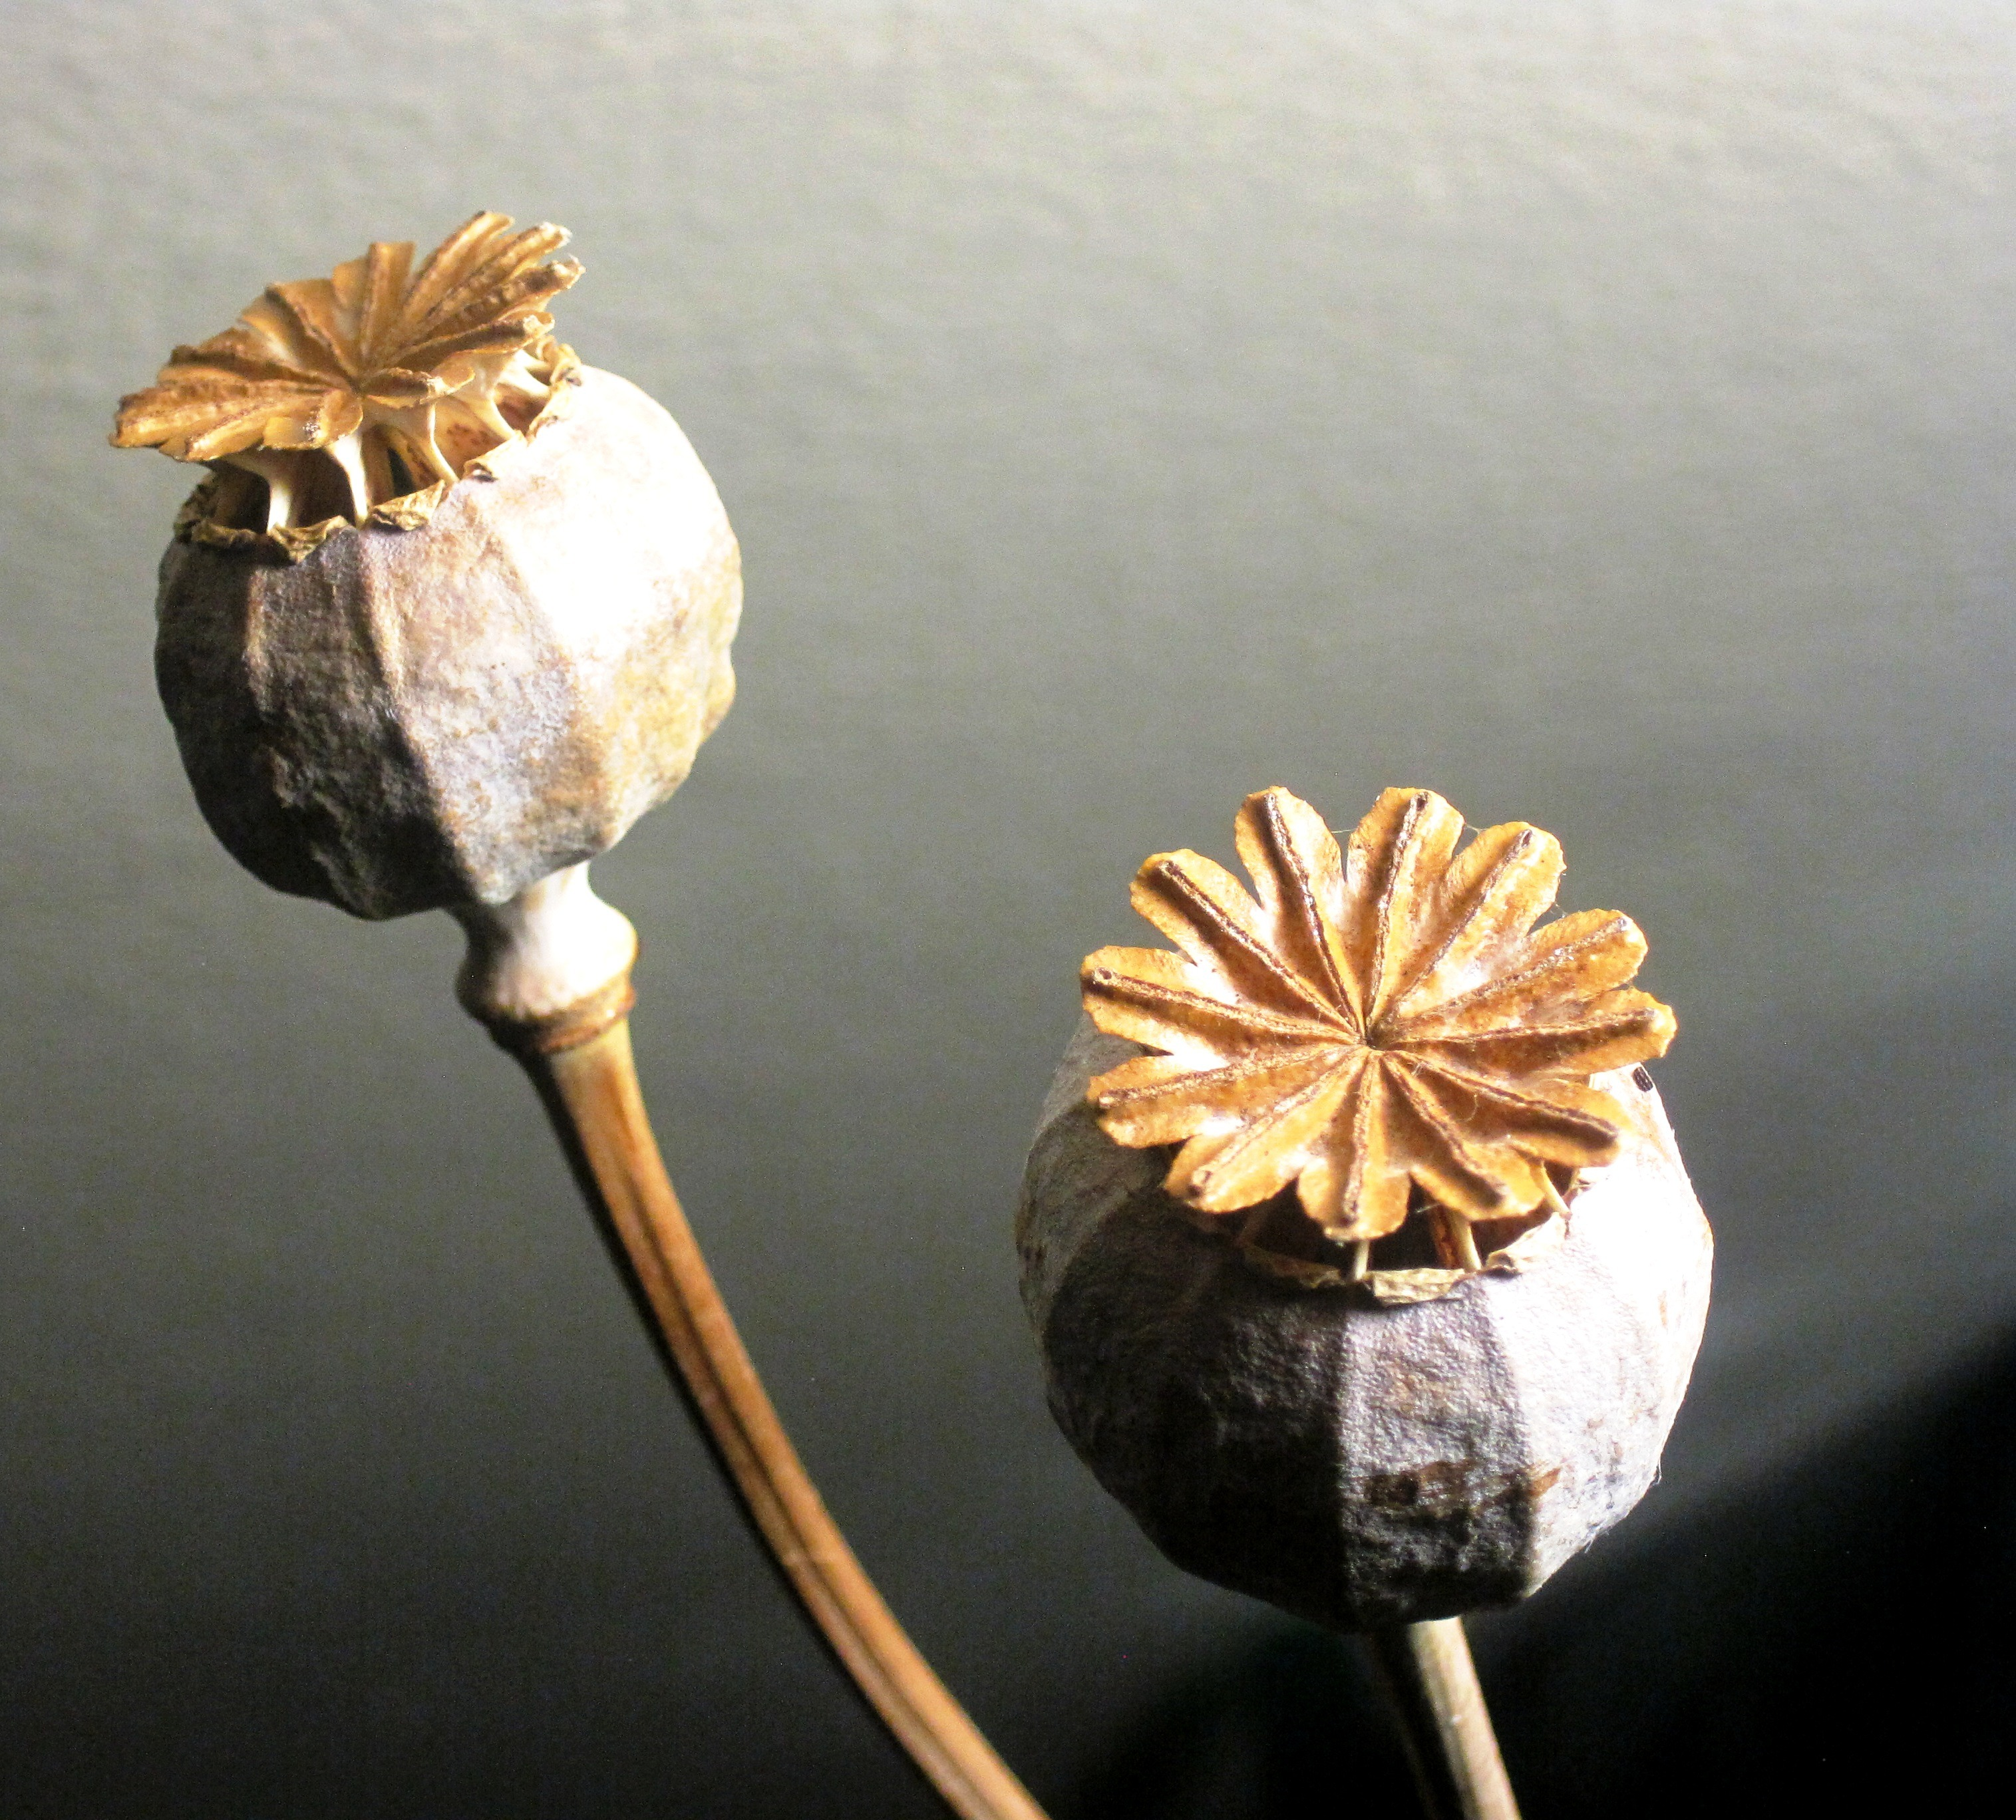 Dried Poppy Seed Pods Free Image